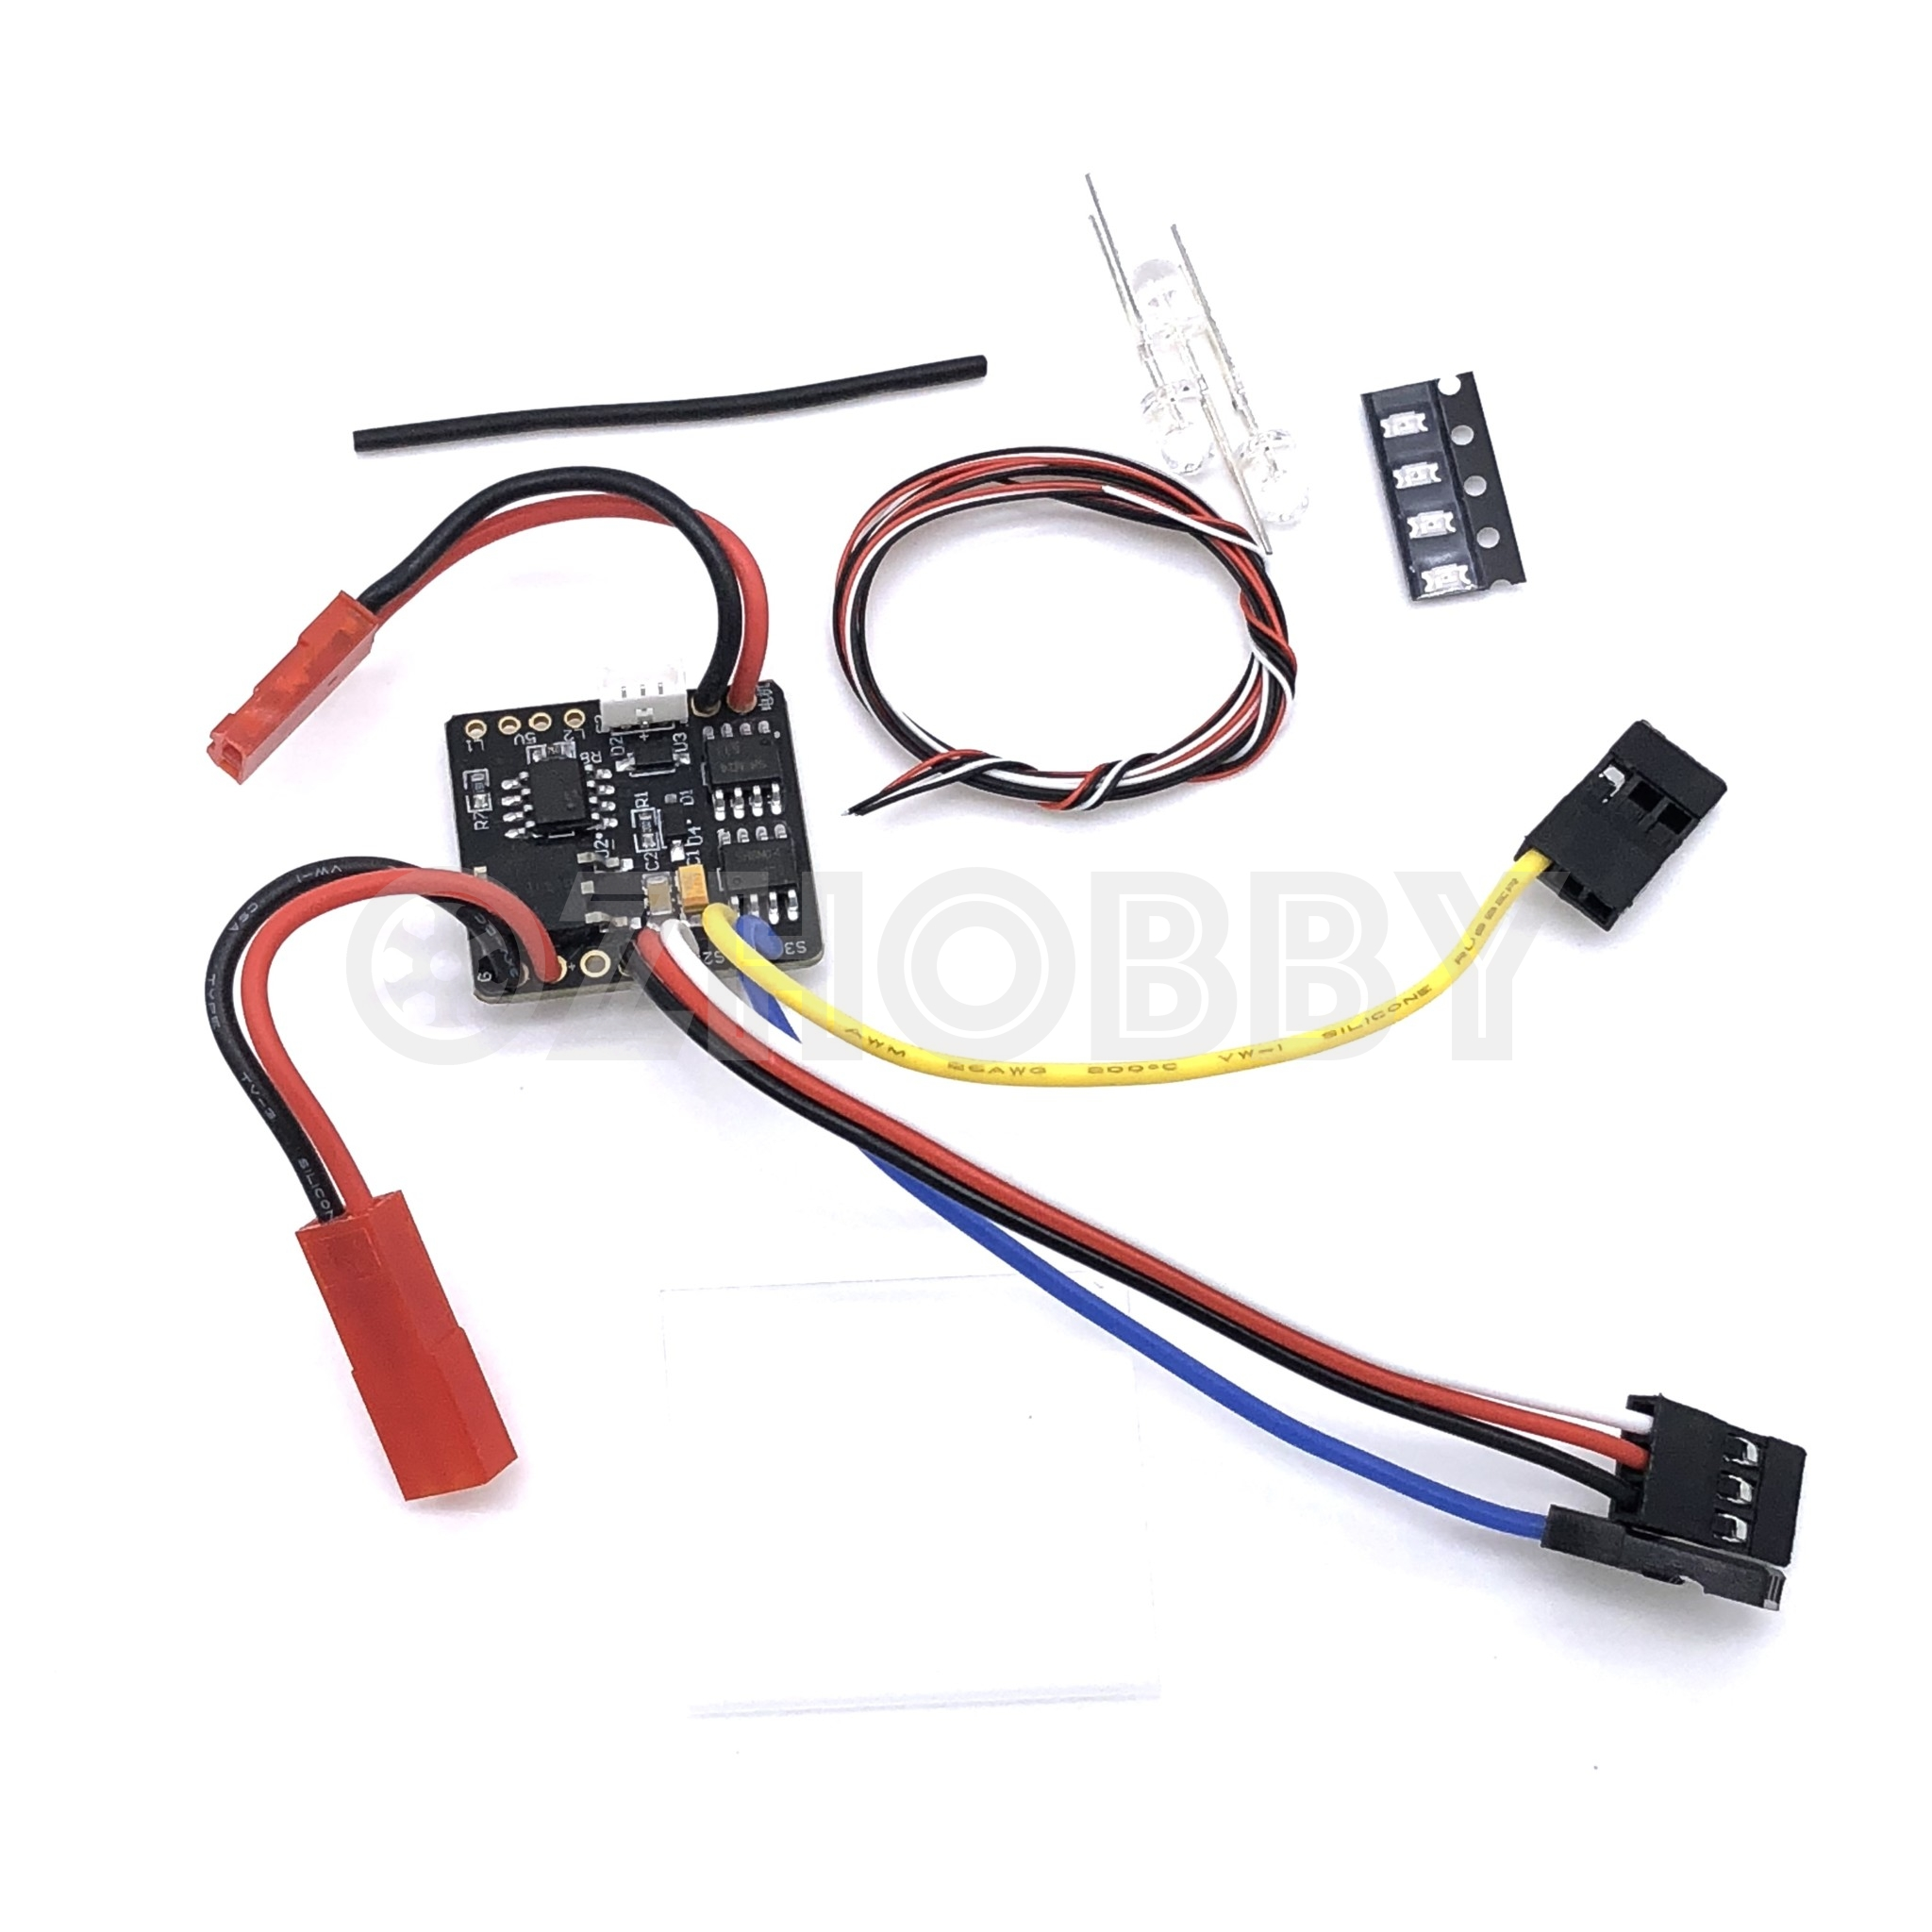 Lipo Wiring Esc Illustration Of Diagram Led Light Set Orlandoo Hunter 2 In 1 2s Kit Ts0001 Rh Ozhobby Net 30a Circuit Breaker 30 Amp